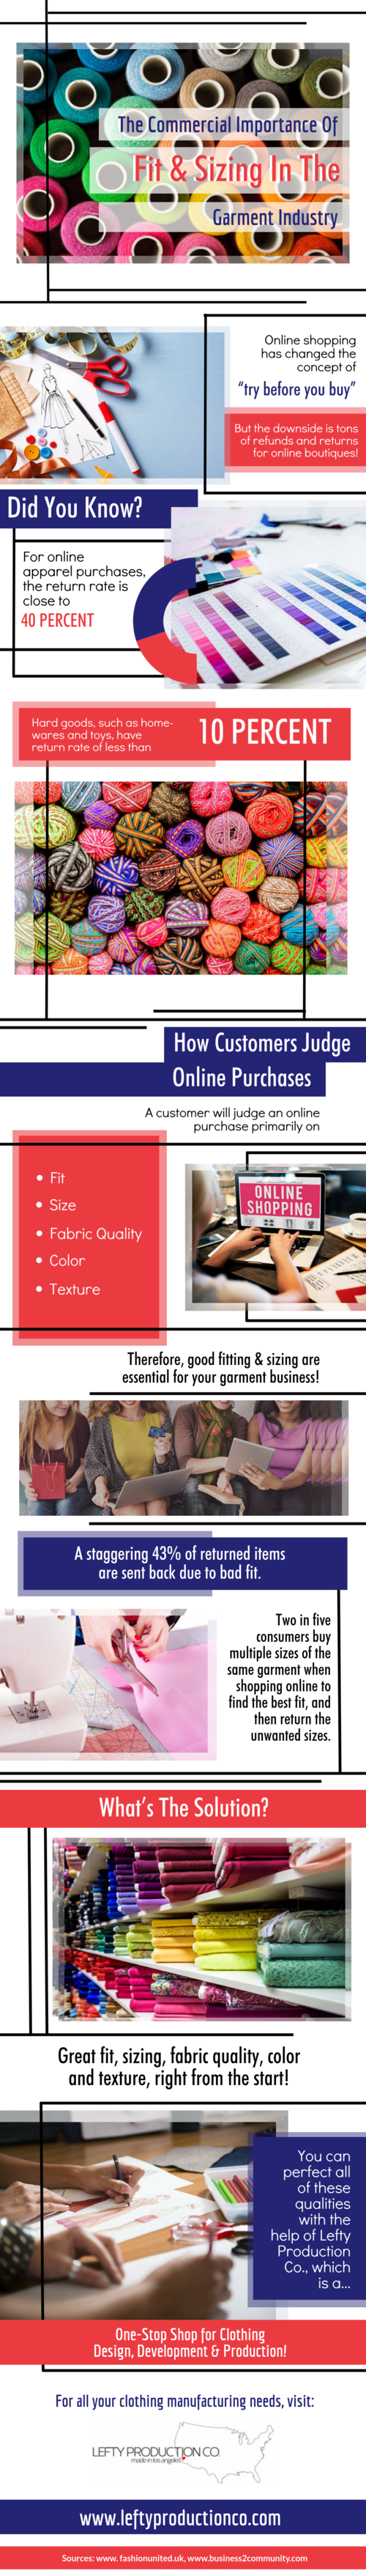 The+Commercial+Importance+Of+Fit+&+Sizing+In+The+Garment+Industry.png